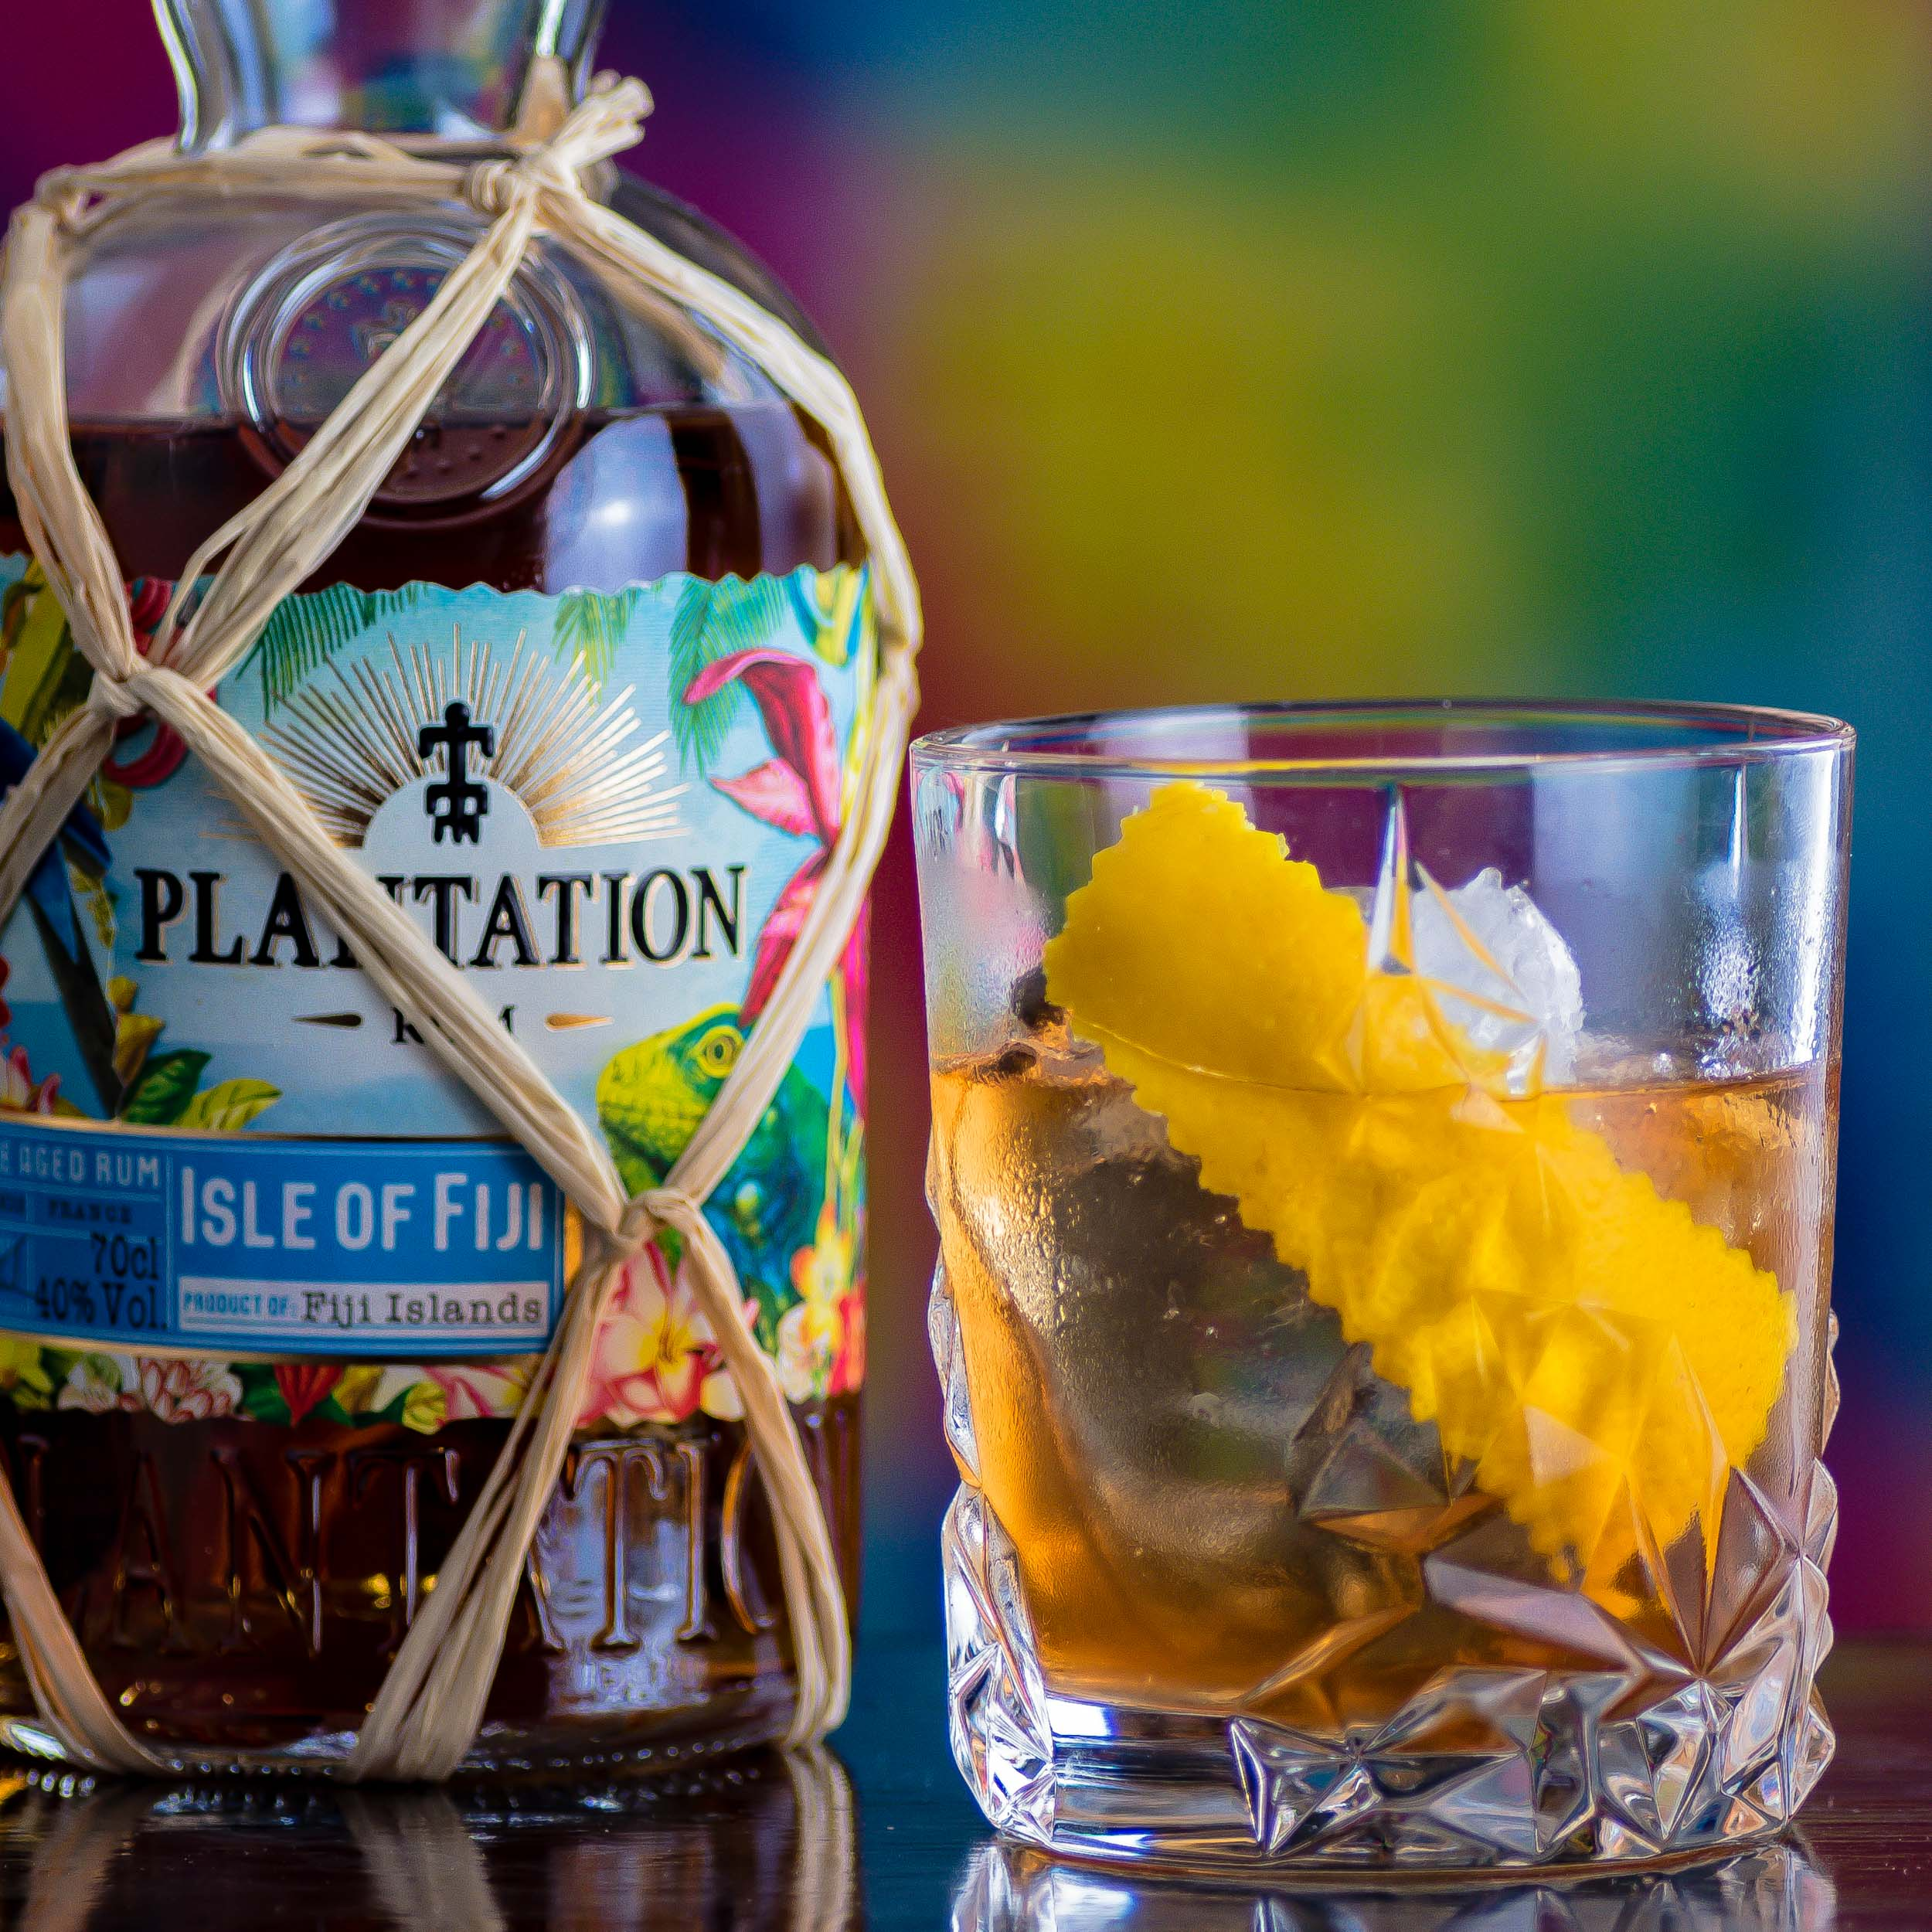 Plantation Isle of Fiji Rum im Old Fashioned.